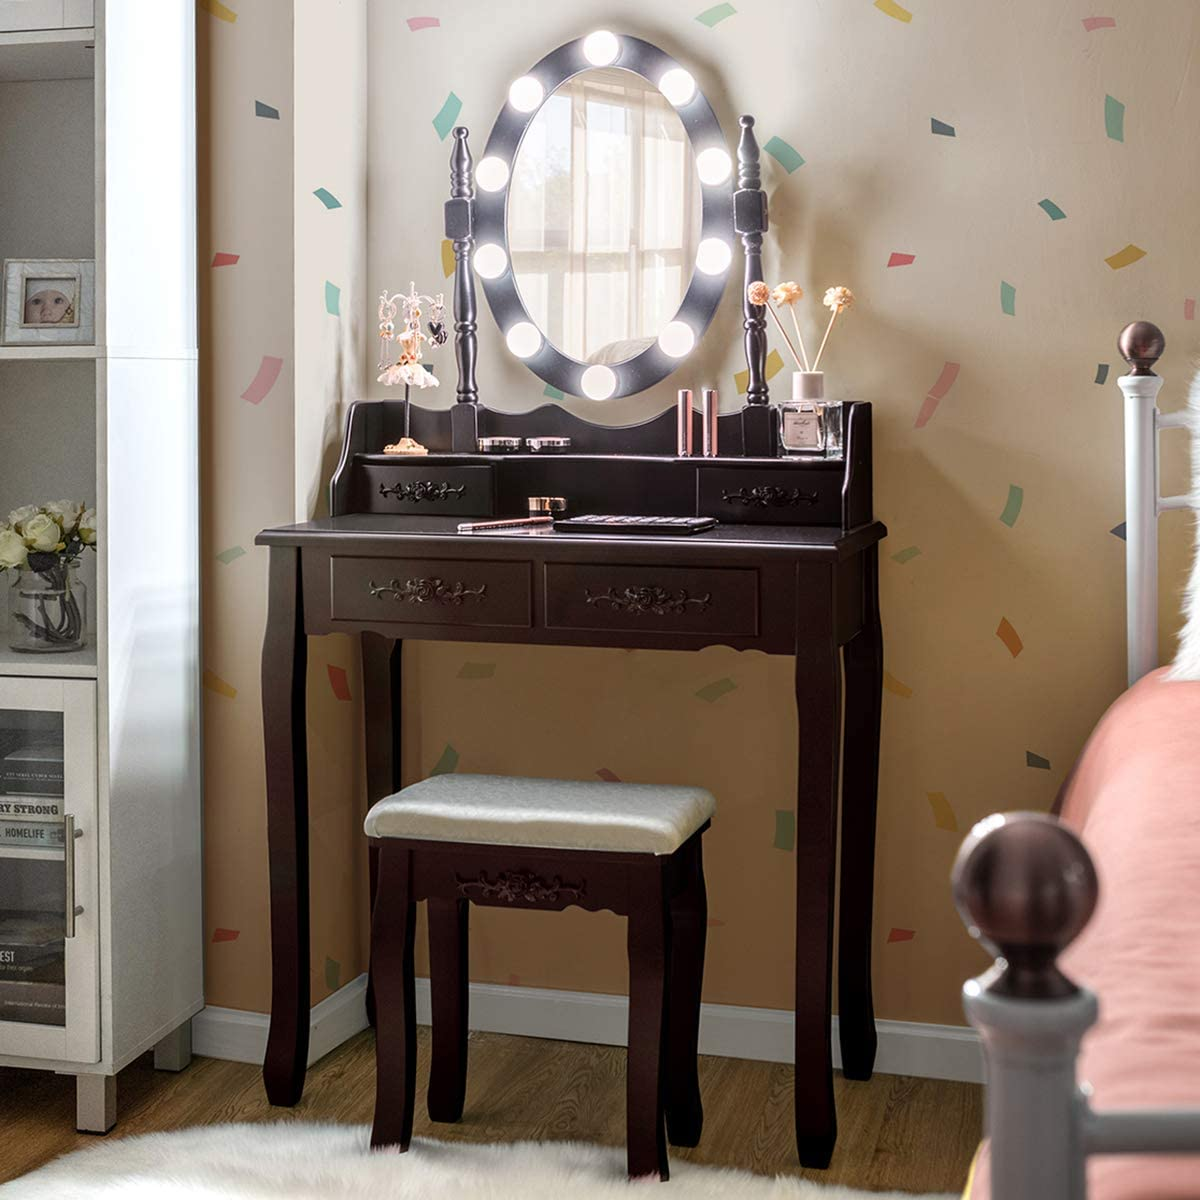 Giantex Vanity Table Set with 10 LED Lights, Makeup Dressing Table w/Lighted Oval Mirror and Touch Switch, Brightness Adjustable,4 Drawers Makeup Dressing Desk w/Cushioned Stool Set (Dark Brown)